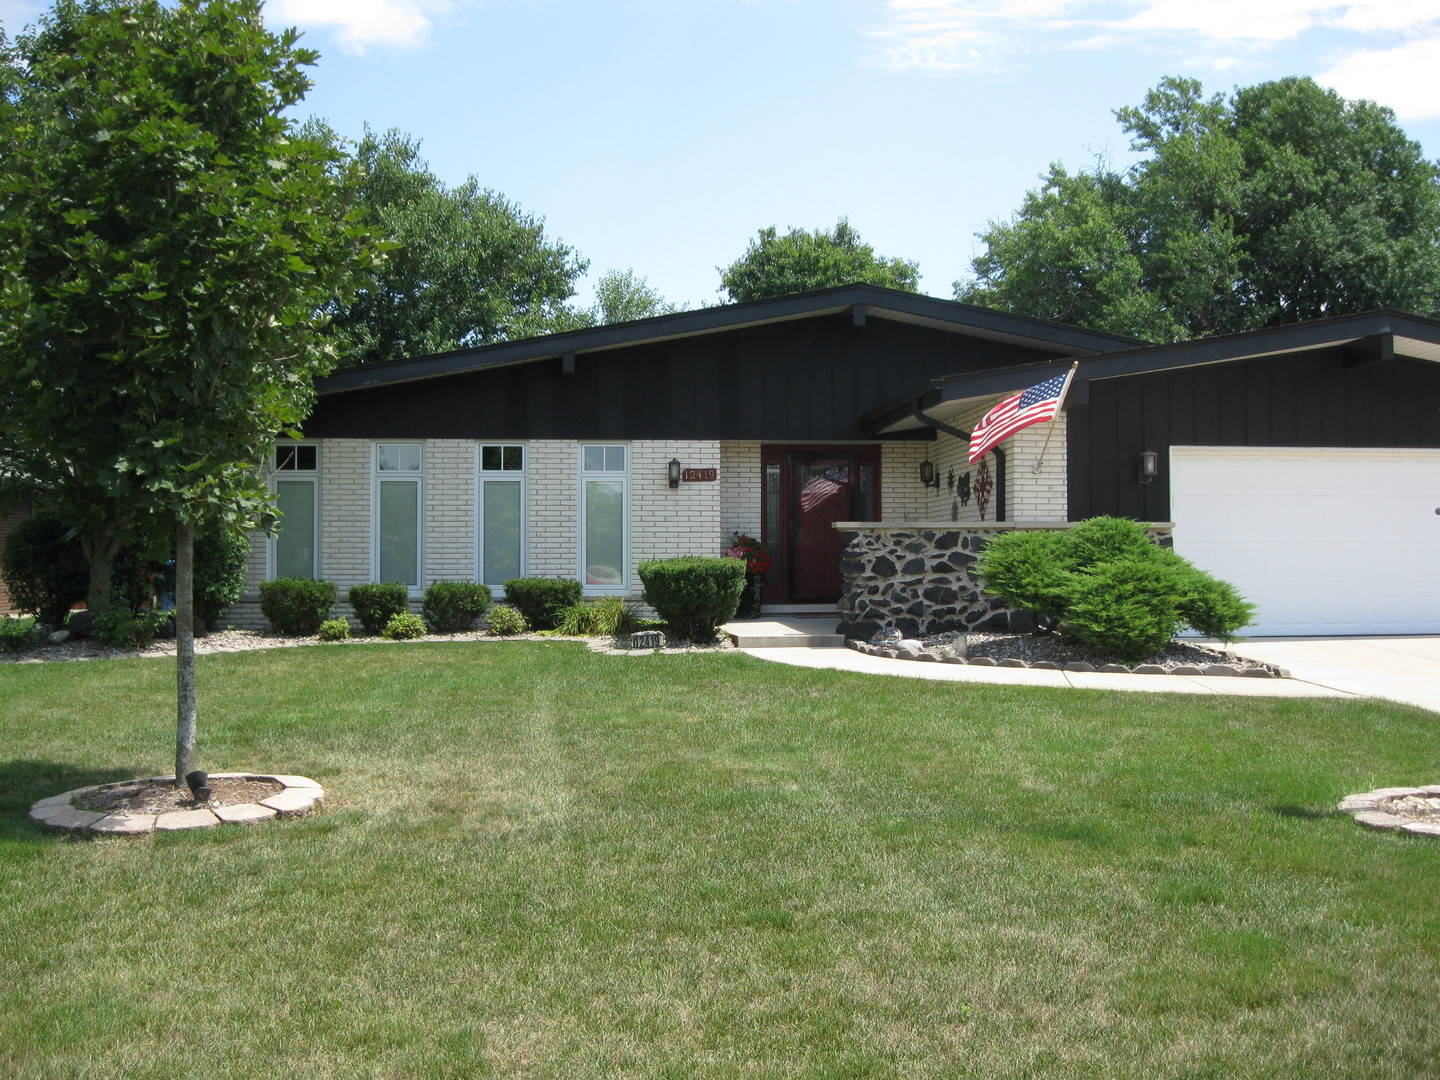 12419 South Melvina, PALOS HEIGHTS, Illinois, 60463